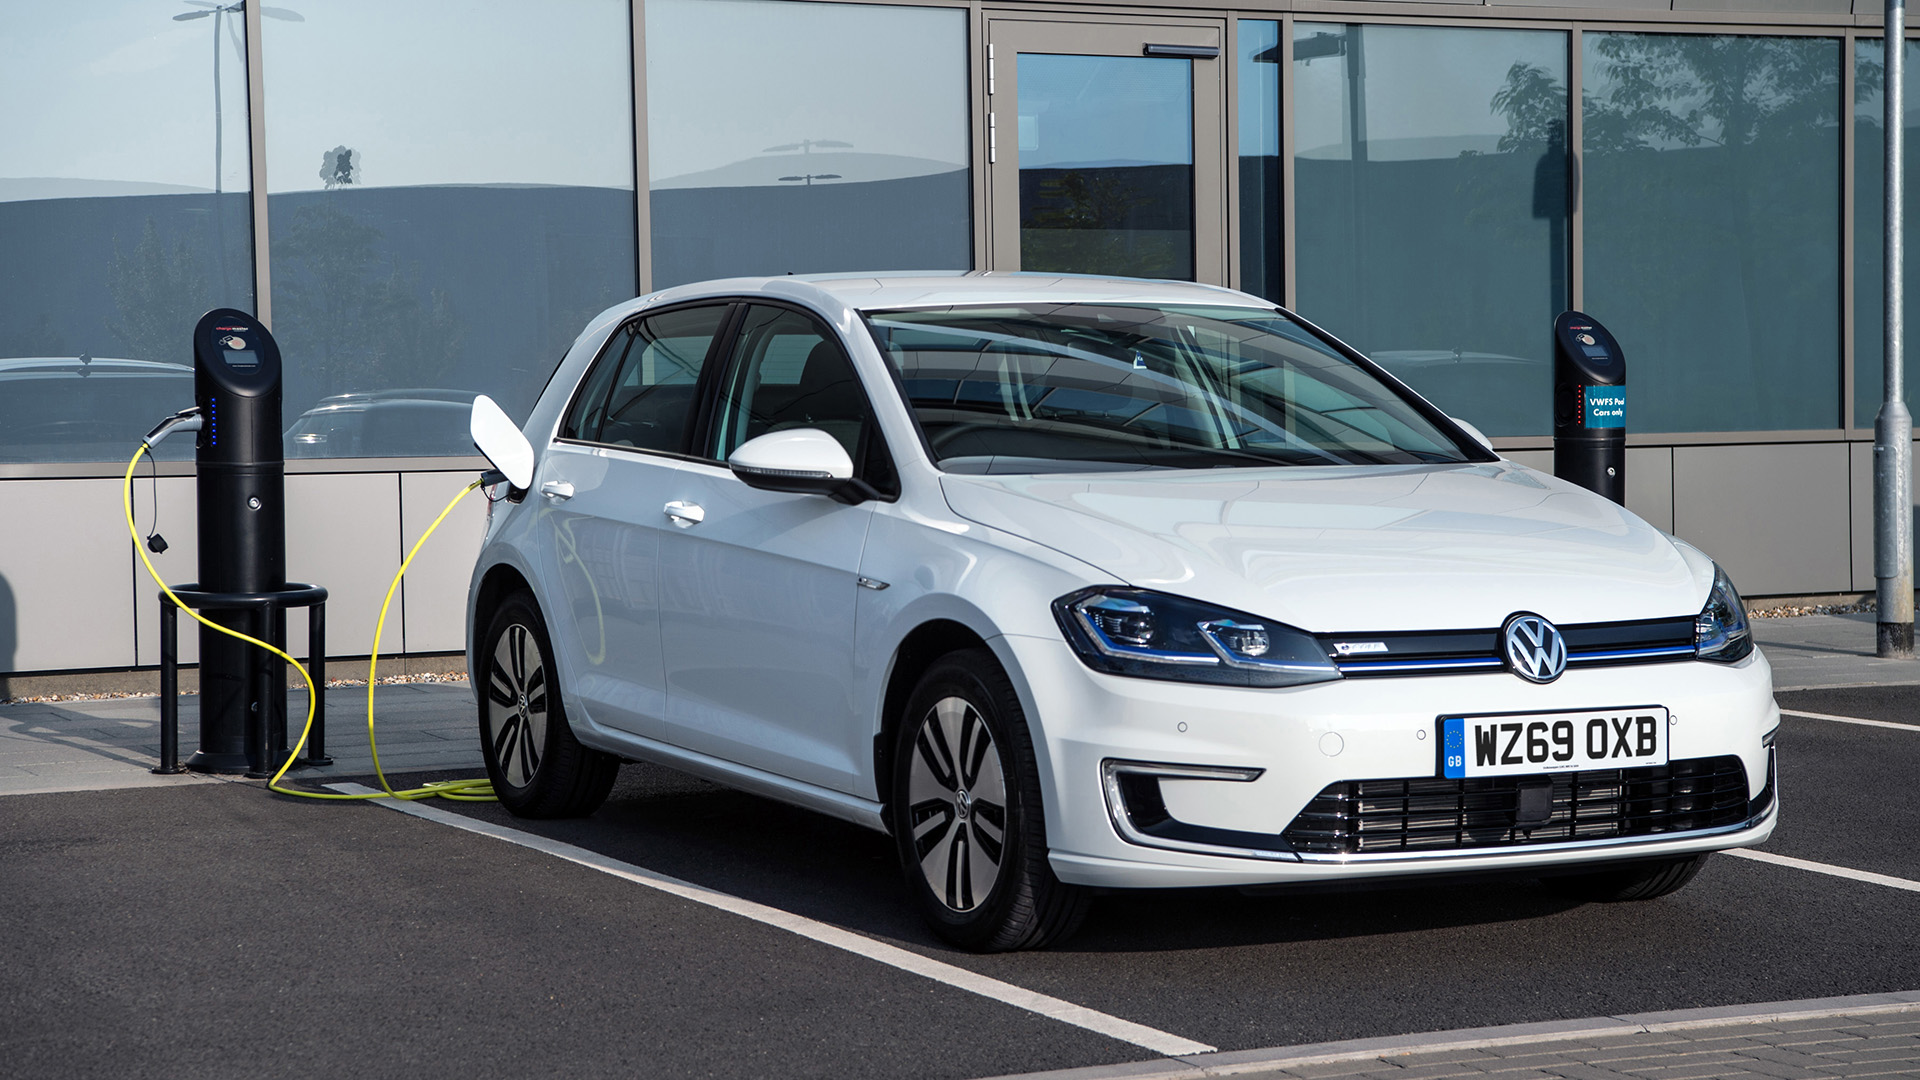 16. Volkswagen e-Golf